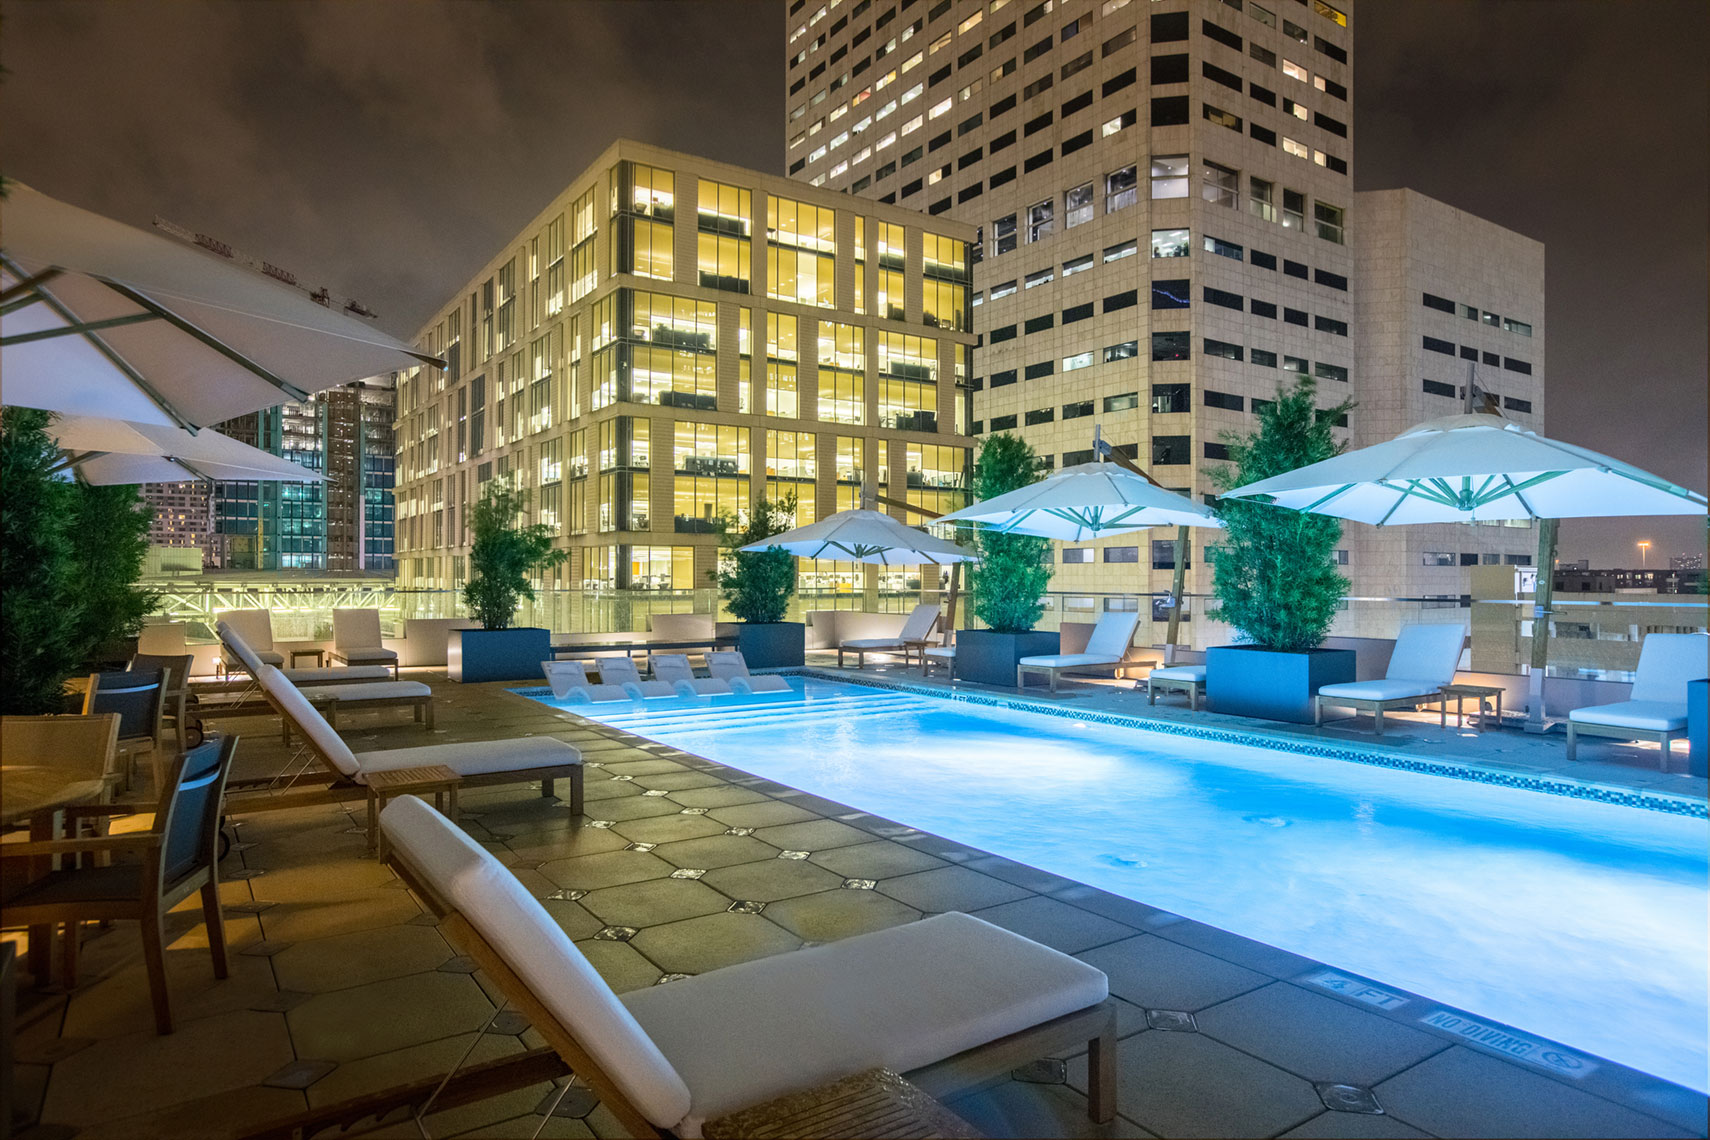 Hotel Pool at Hotel Alessandra at GreenStreet in Houston by Texas Top Architectural Photographer Shannon O